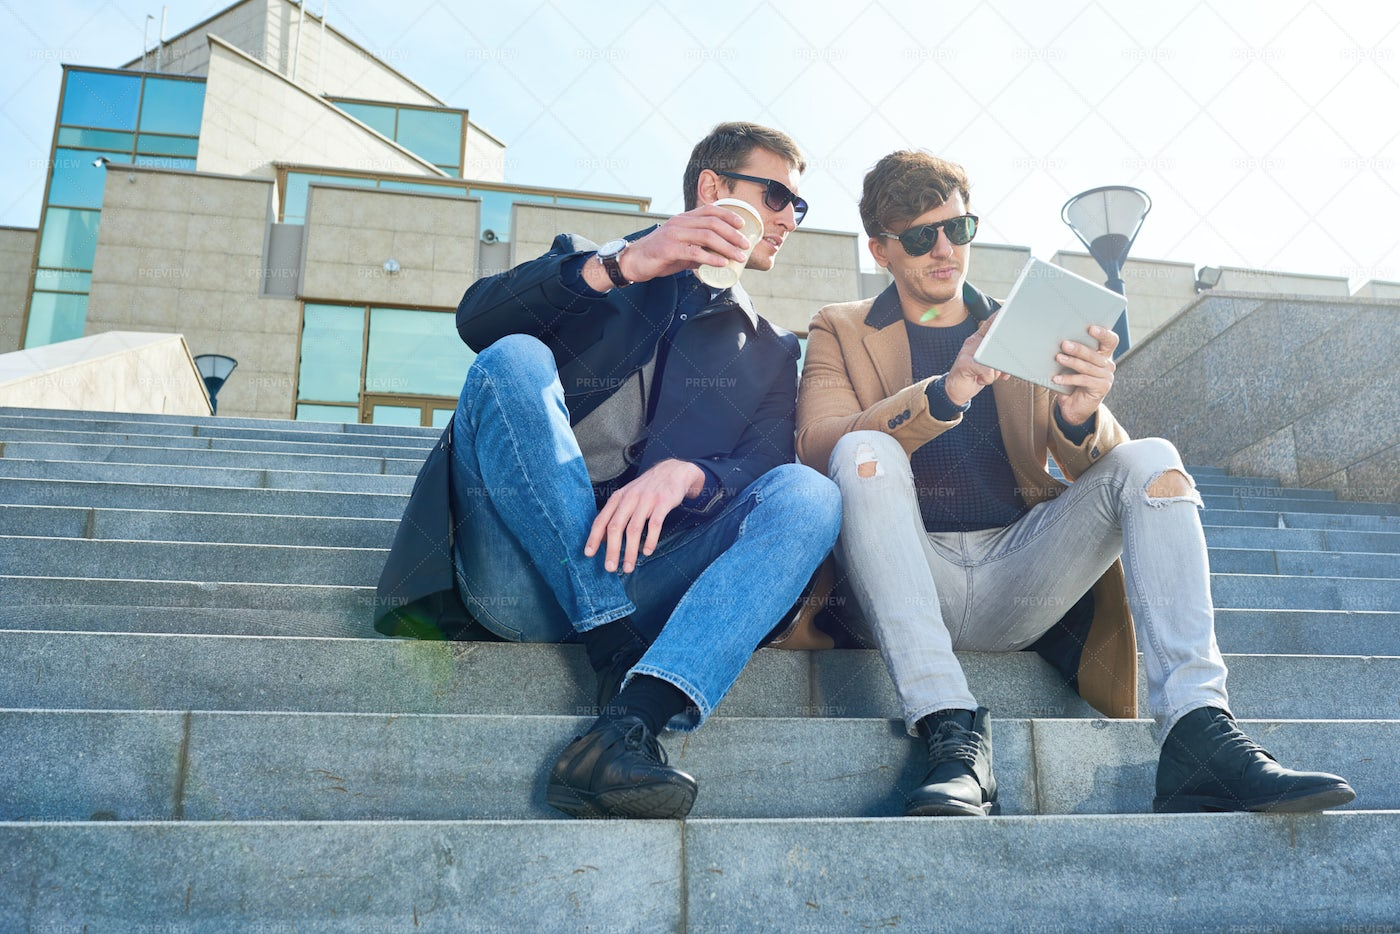 Modern Young Men Using Tablet In...: Stock Photos